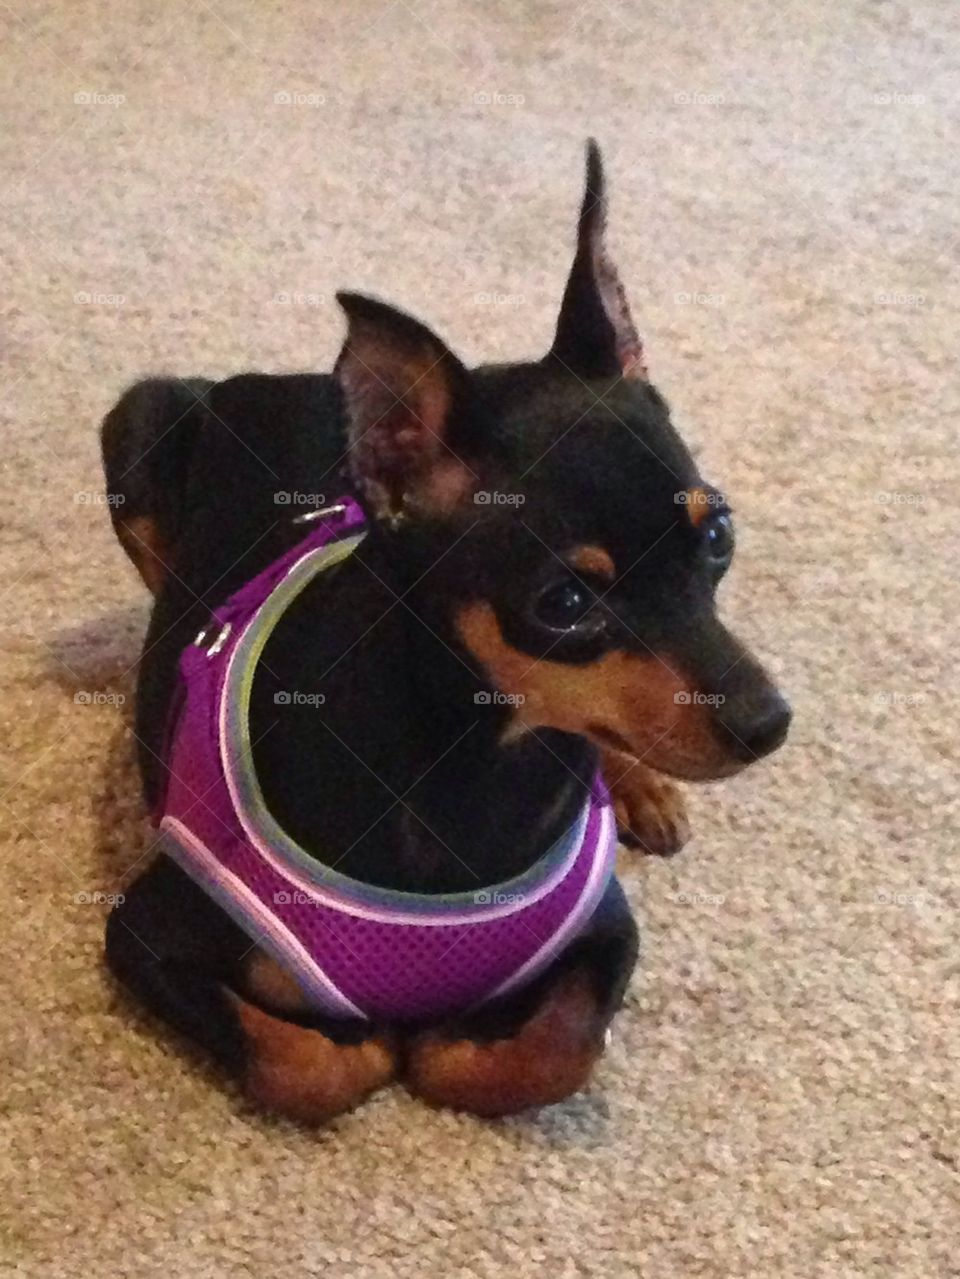 Mini me with harness